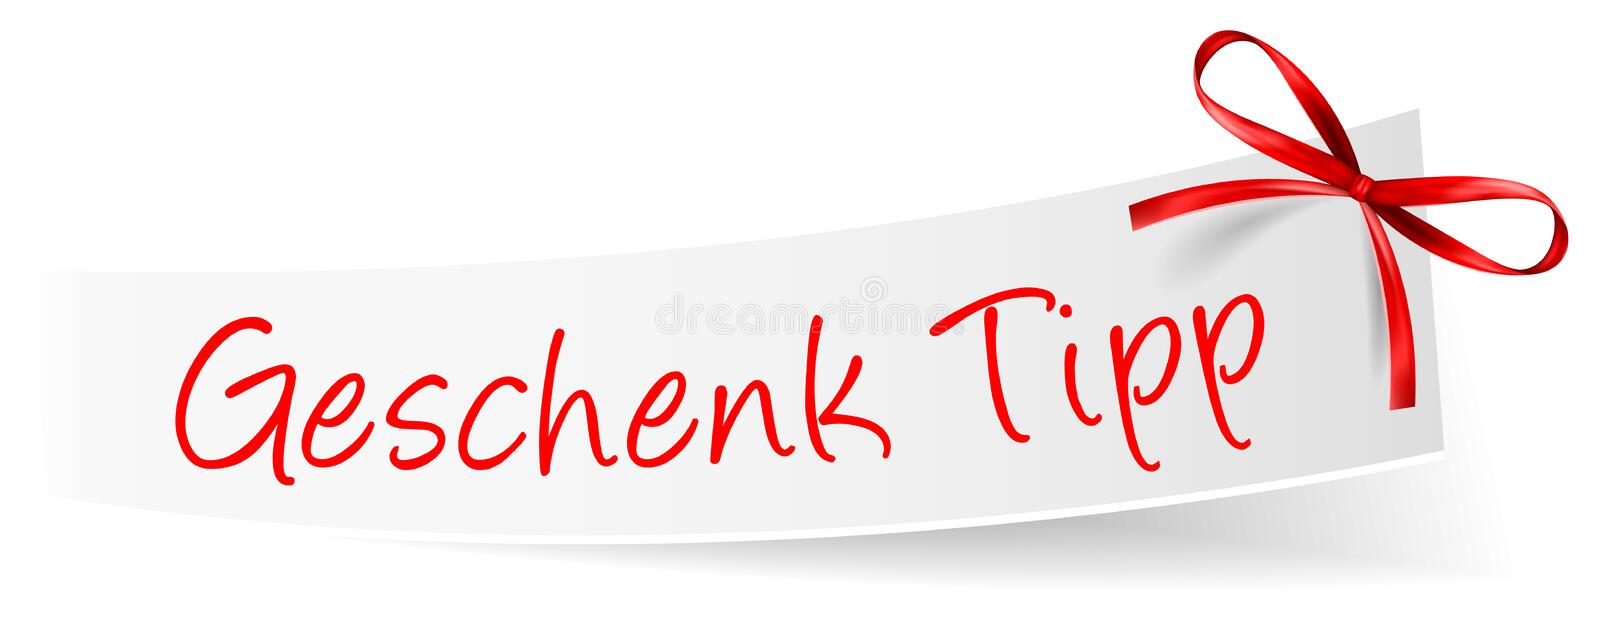 Geschenk Tipp Gift Tip German With Bow And Text Box Vector